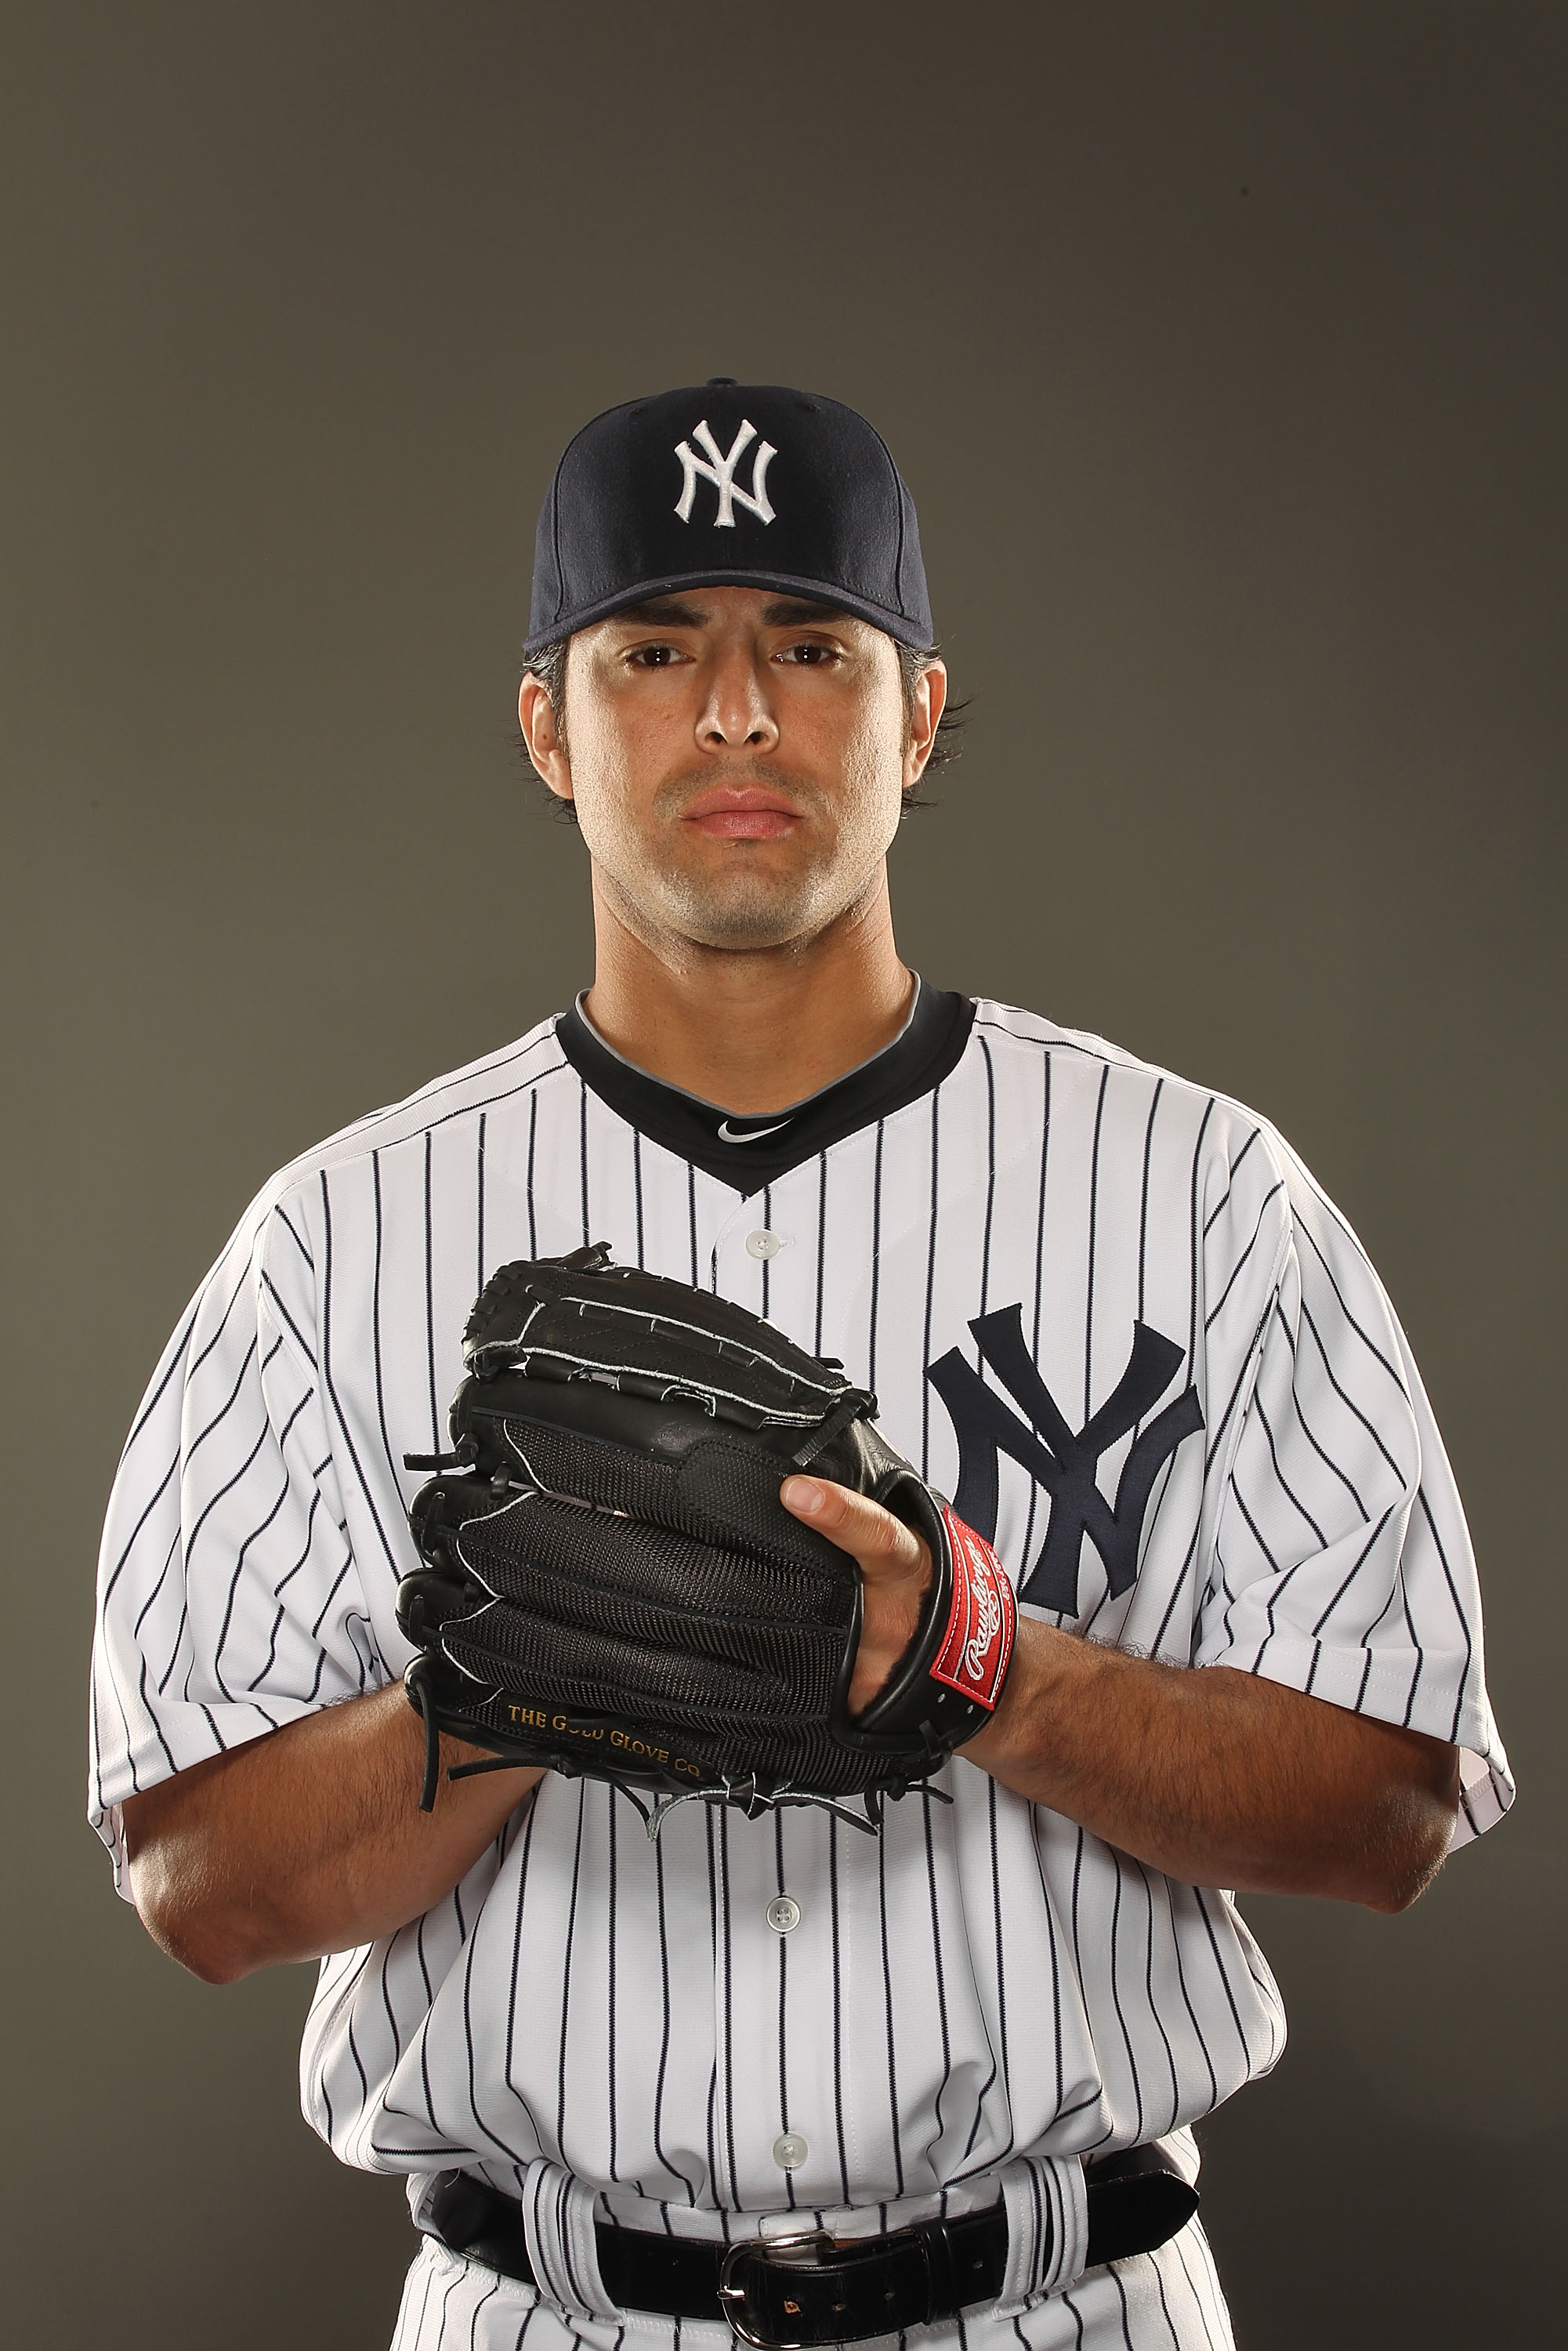 TAMPA, FL - FEBRUARY 23:  Sergio Mitre #45 of the New York Yankees poses for a portrait on Photo Day at George M. Steinbrenner Field on February 23, 2011 in Tampa, Florida.  (Photo by Al Bello/Getty Images)